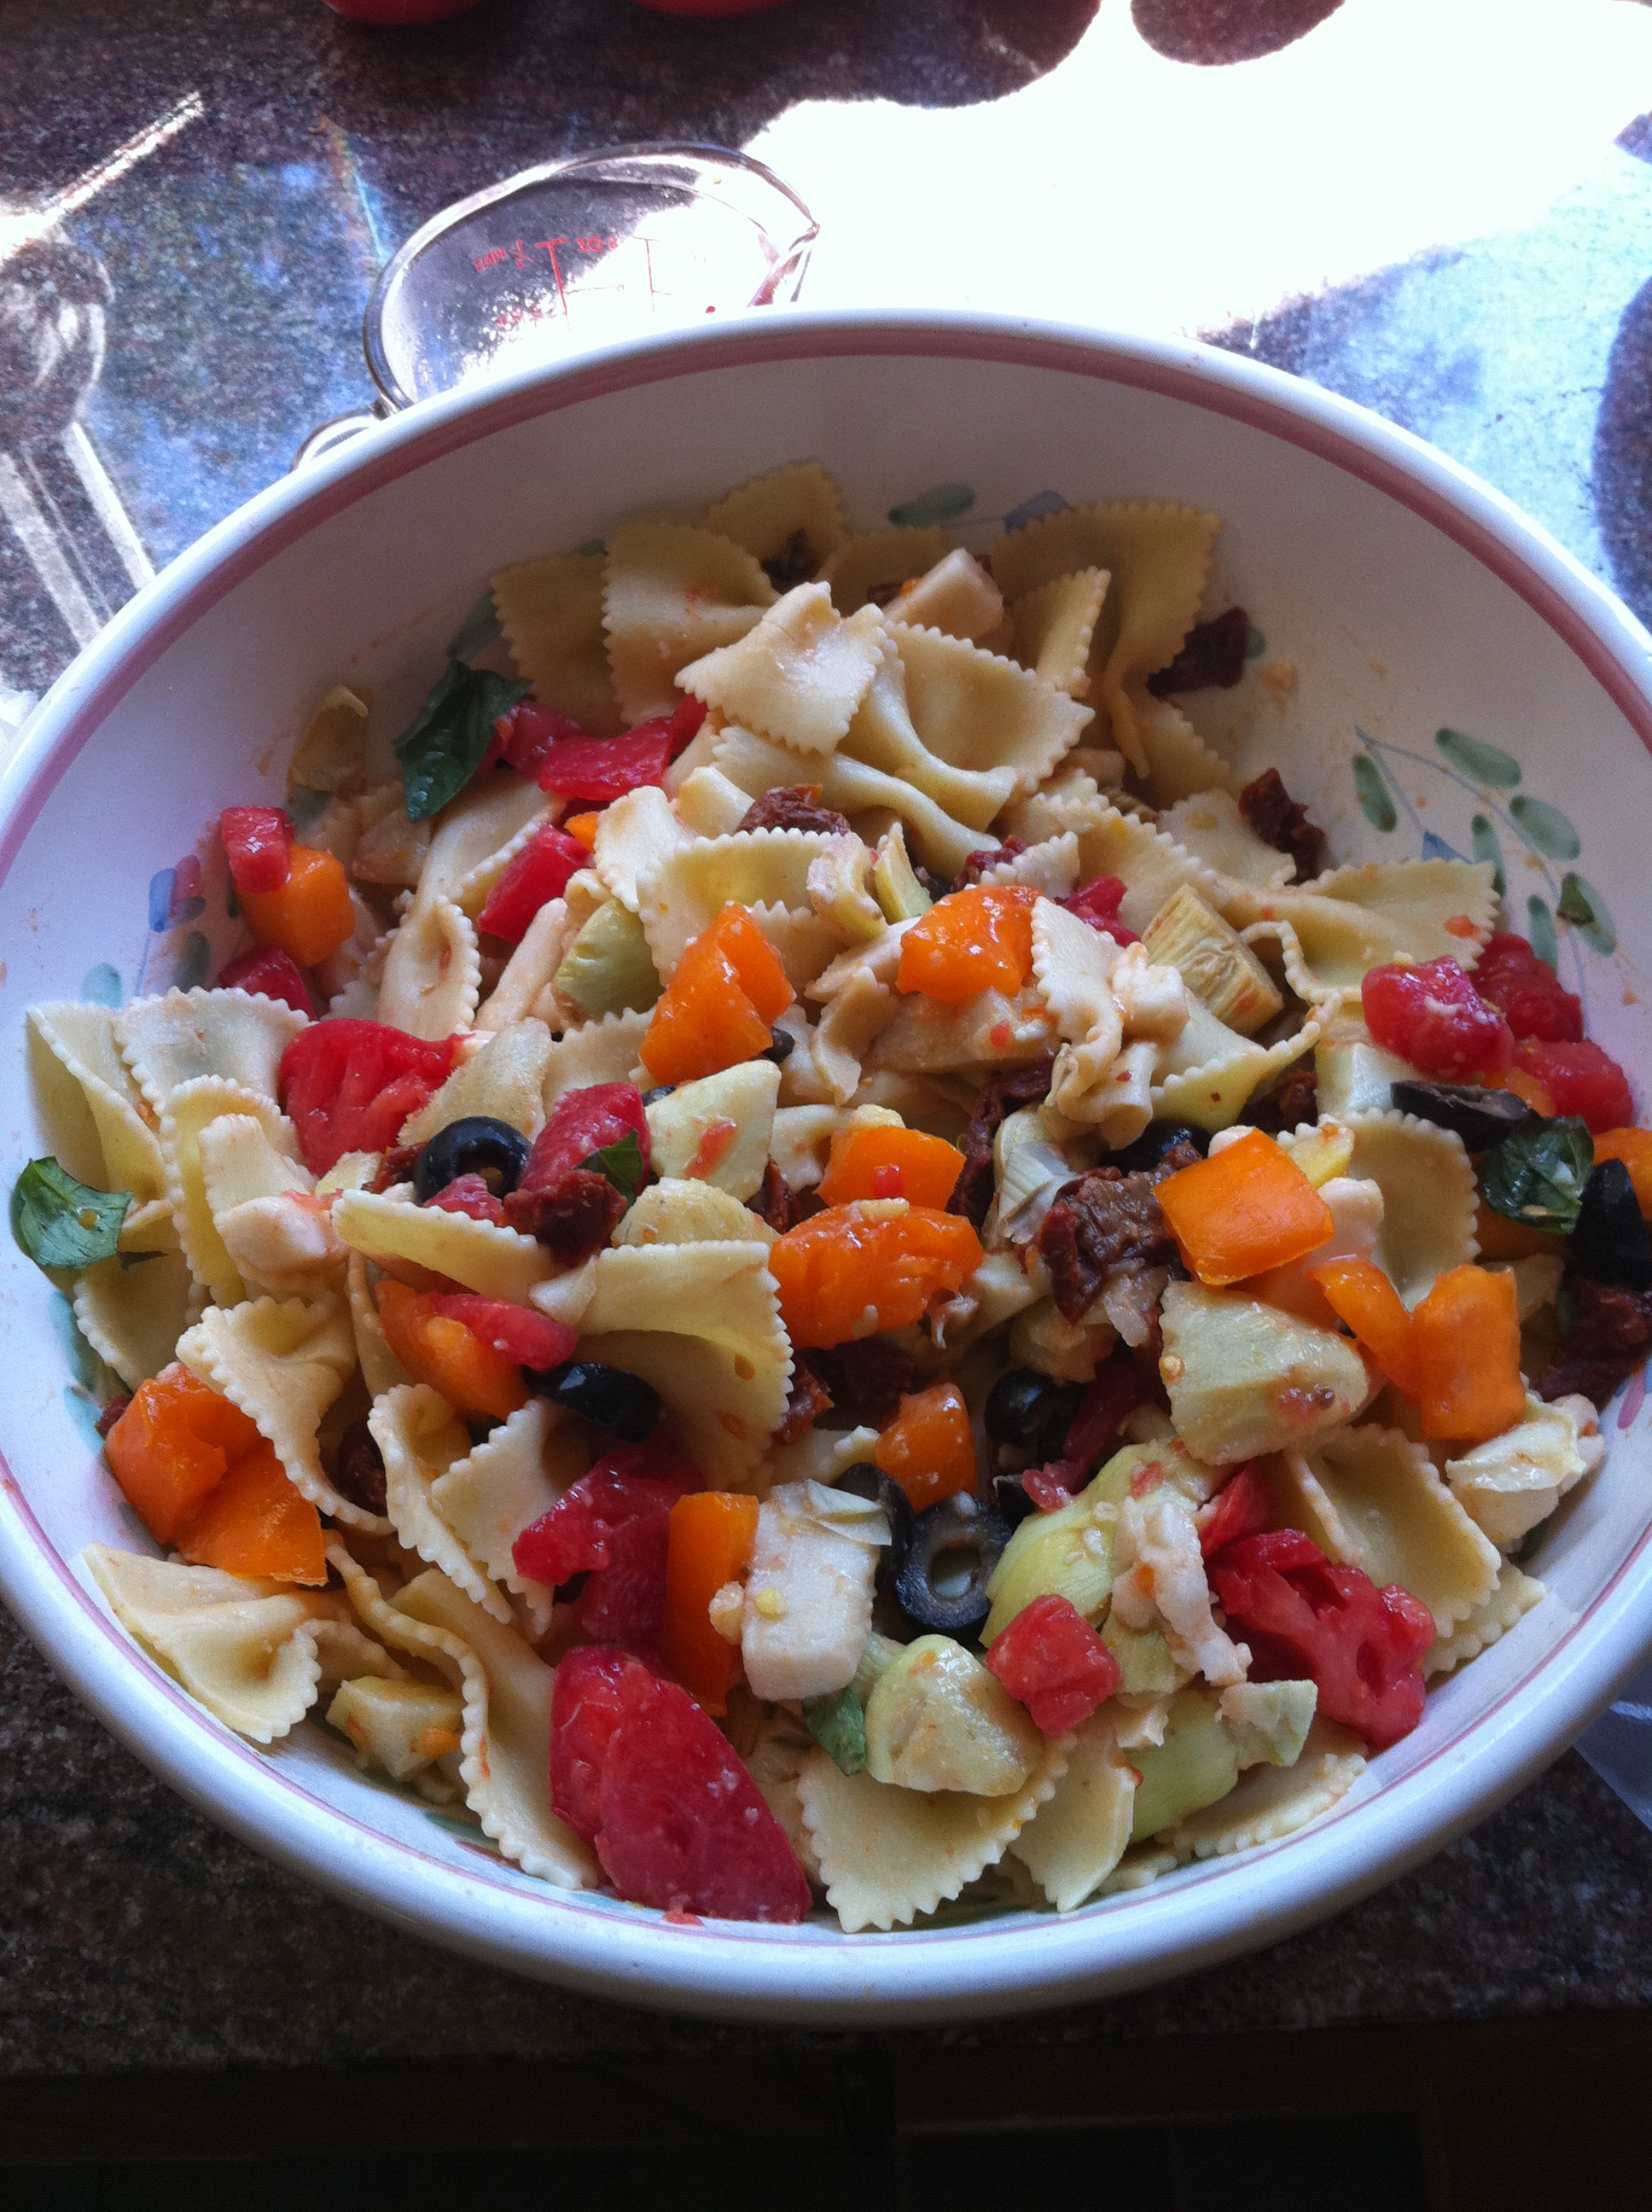 This vegan pasta had tons of veggies, vegan mozzarella, and balsamic dressing.